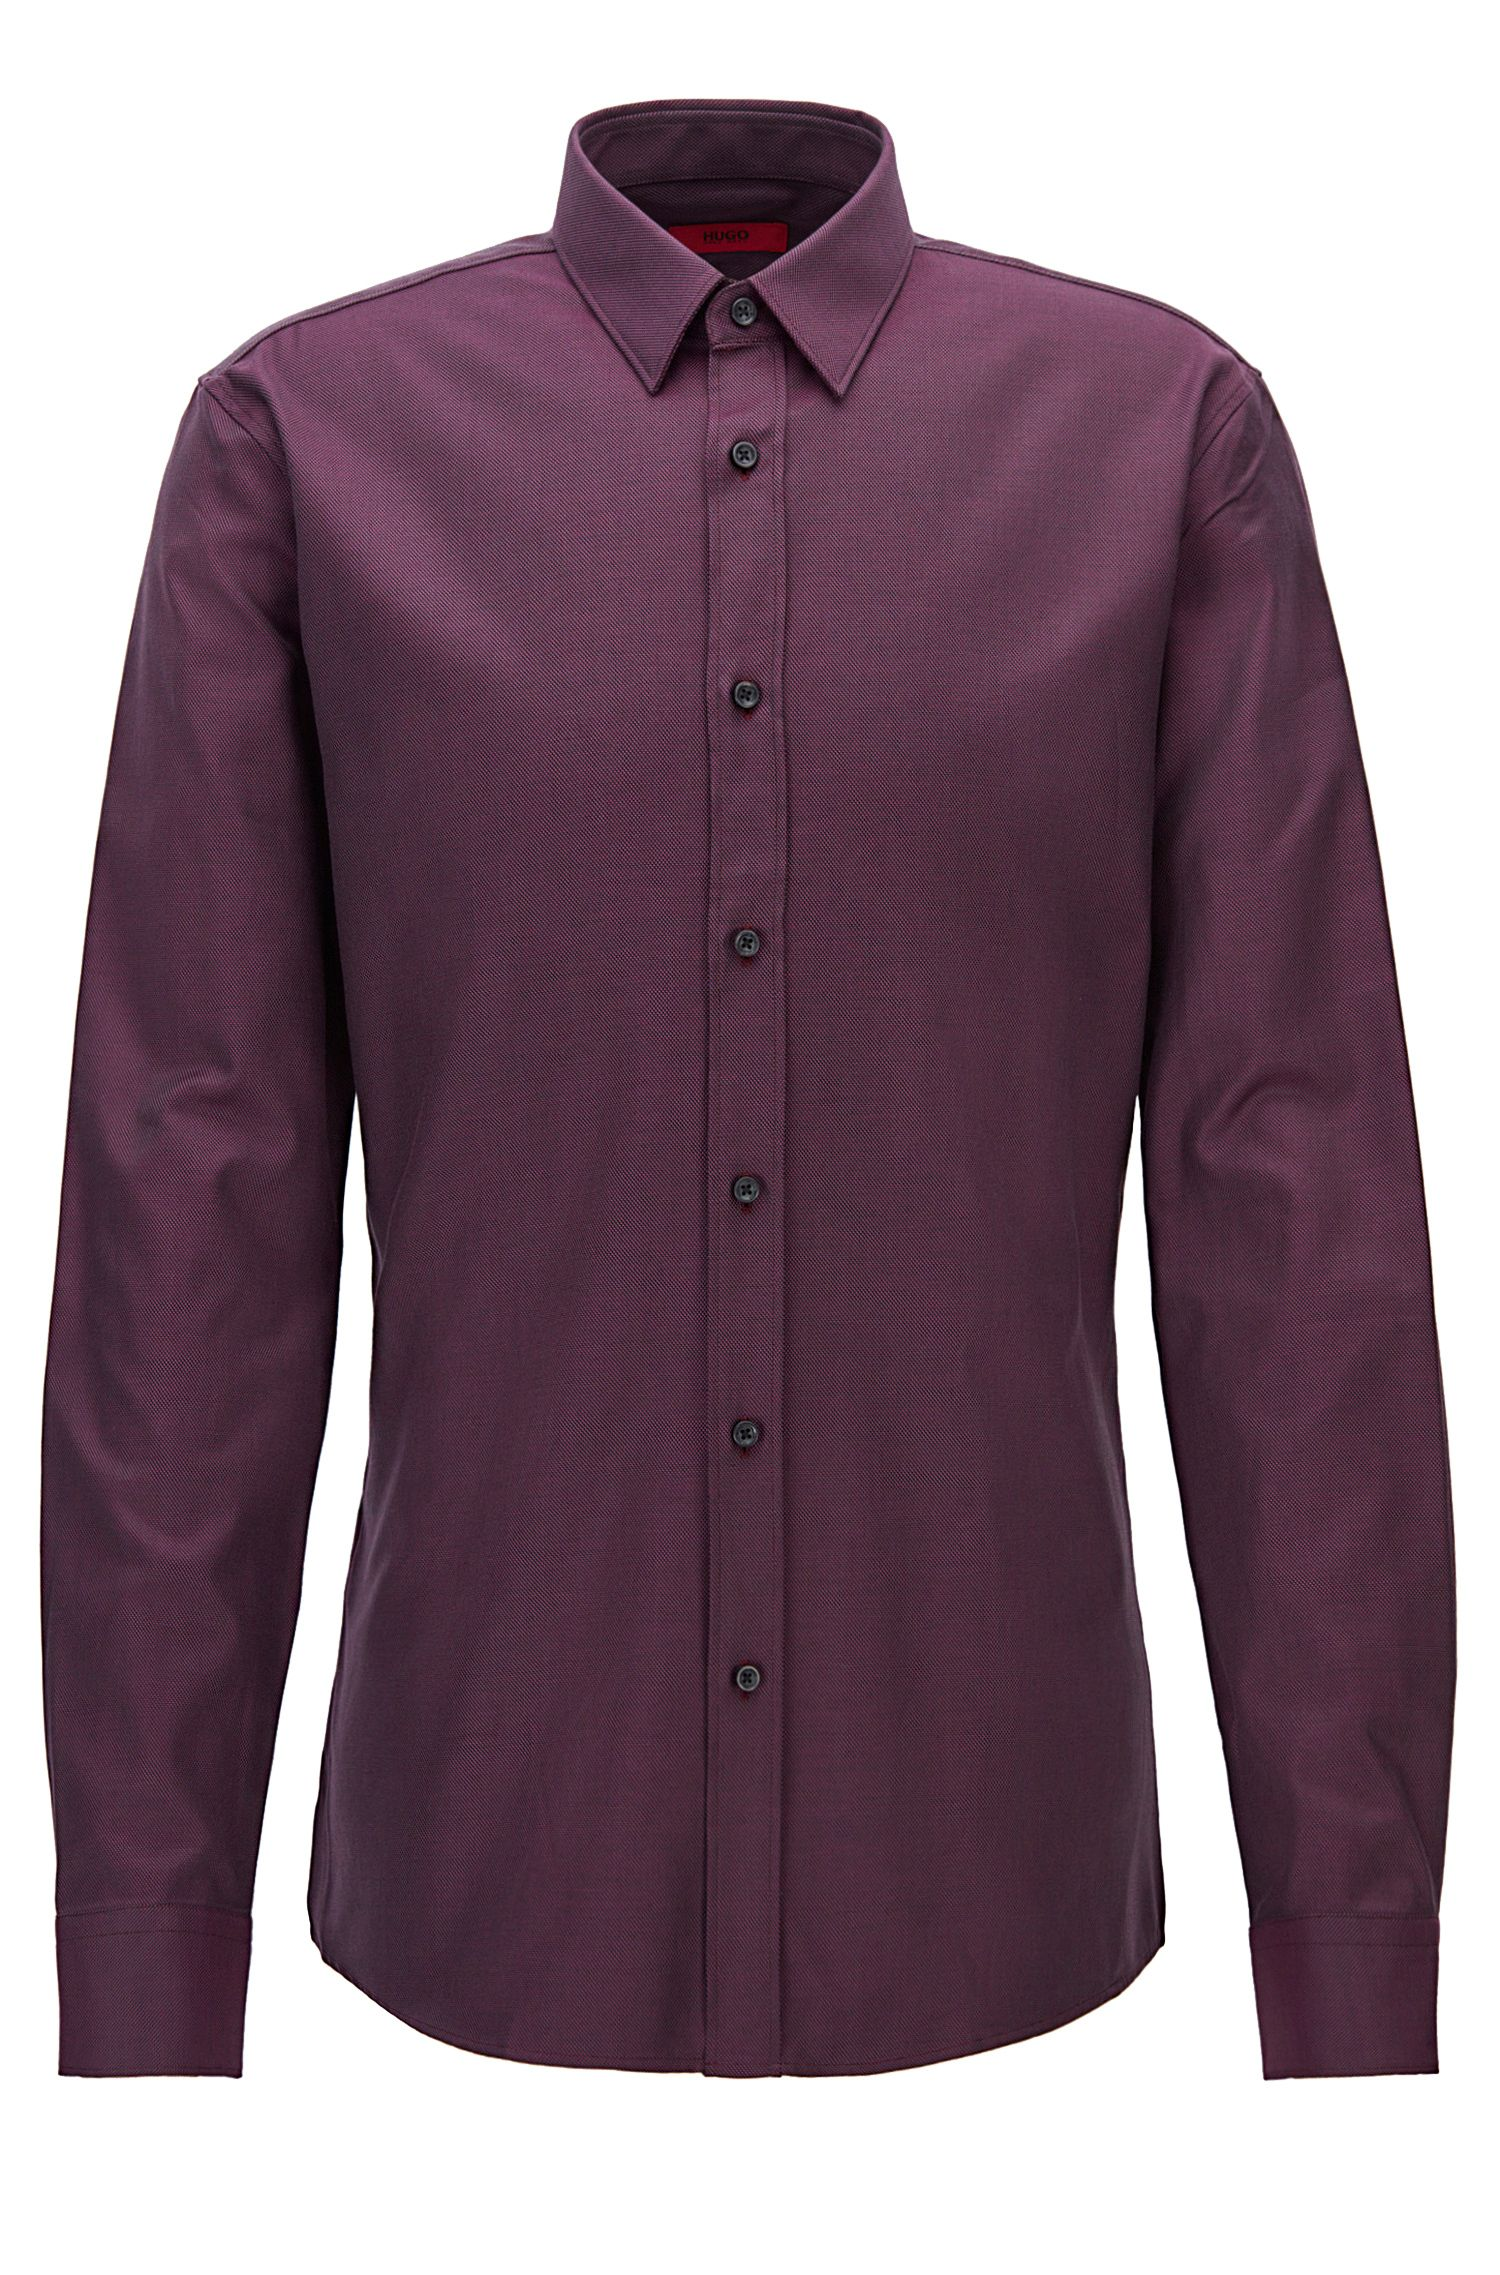 Modern structured cotton shirt in a slim fit